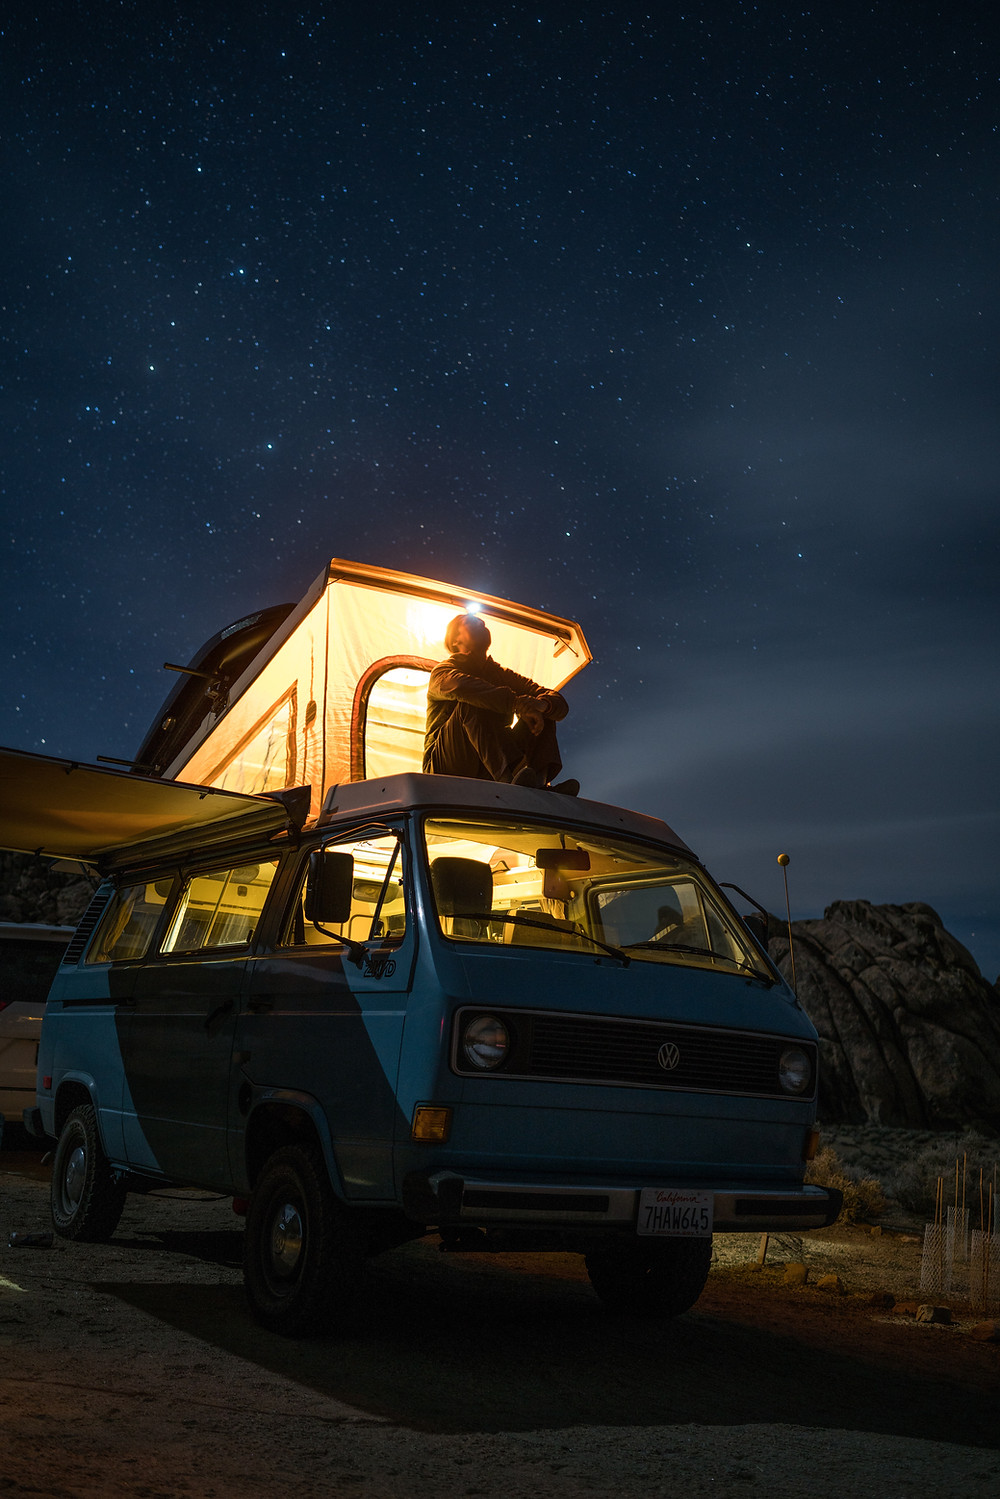 Man sitting on top of an overlanding vehicle equipped with mounted roof tent under starry and clear night sky